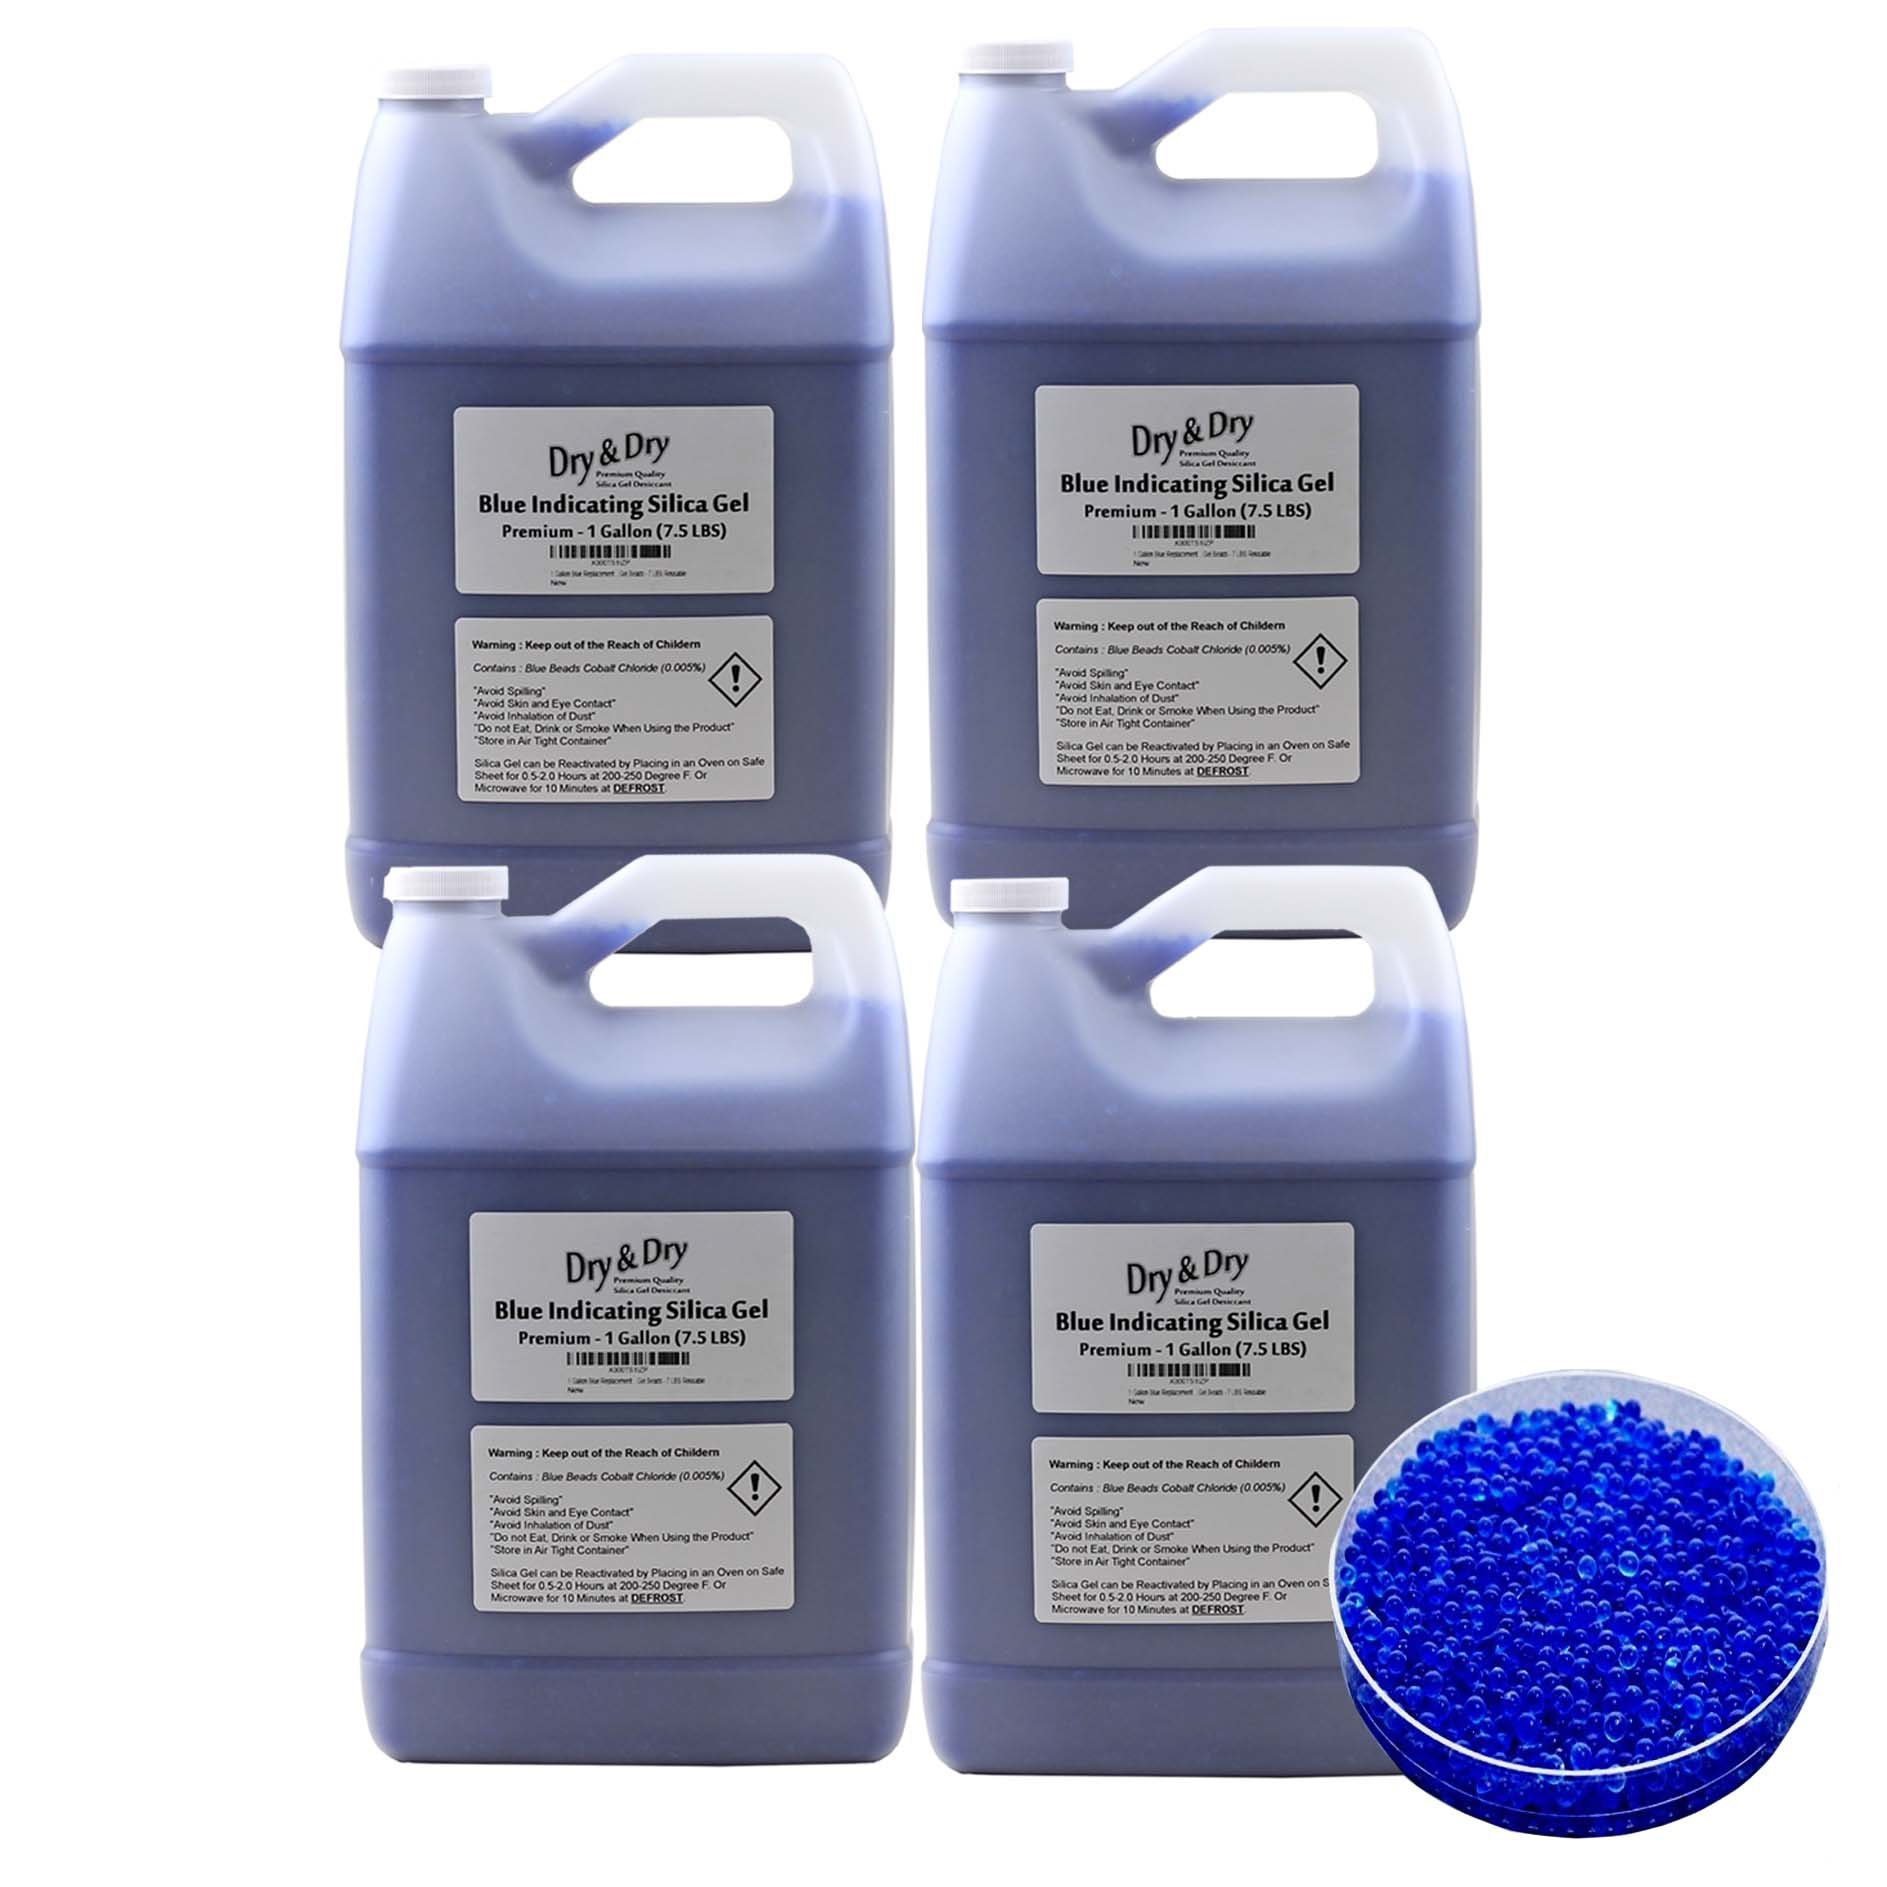 Dry & Dry (30 LBS) Premium Blue Indicating Silica Gel Desiccant Beads(Industry Standard 2-4 mm) - Reusable